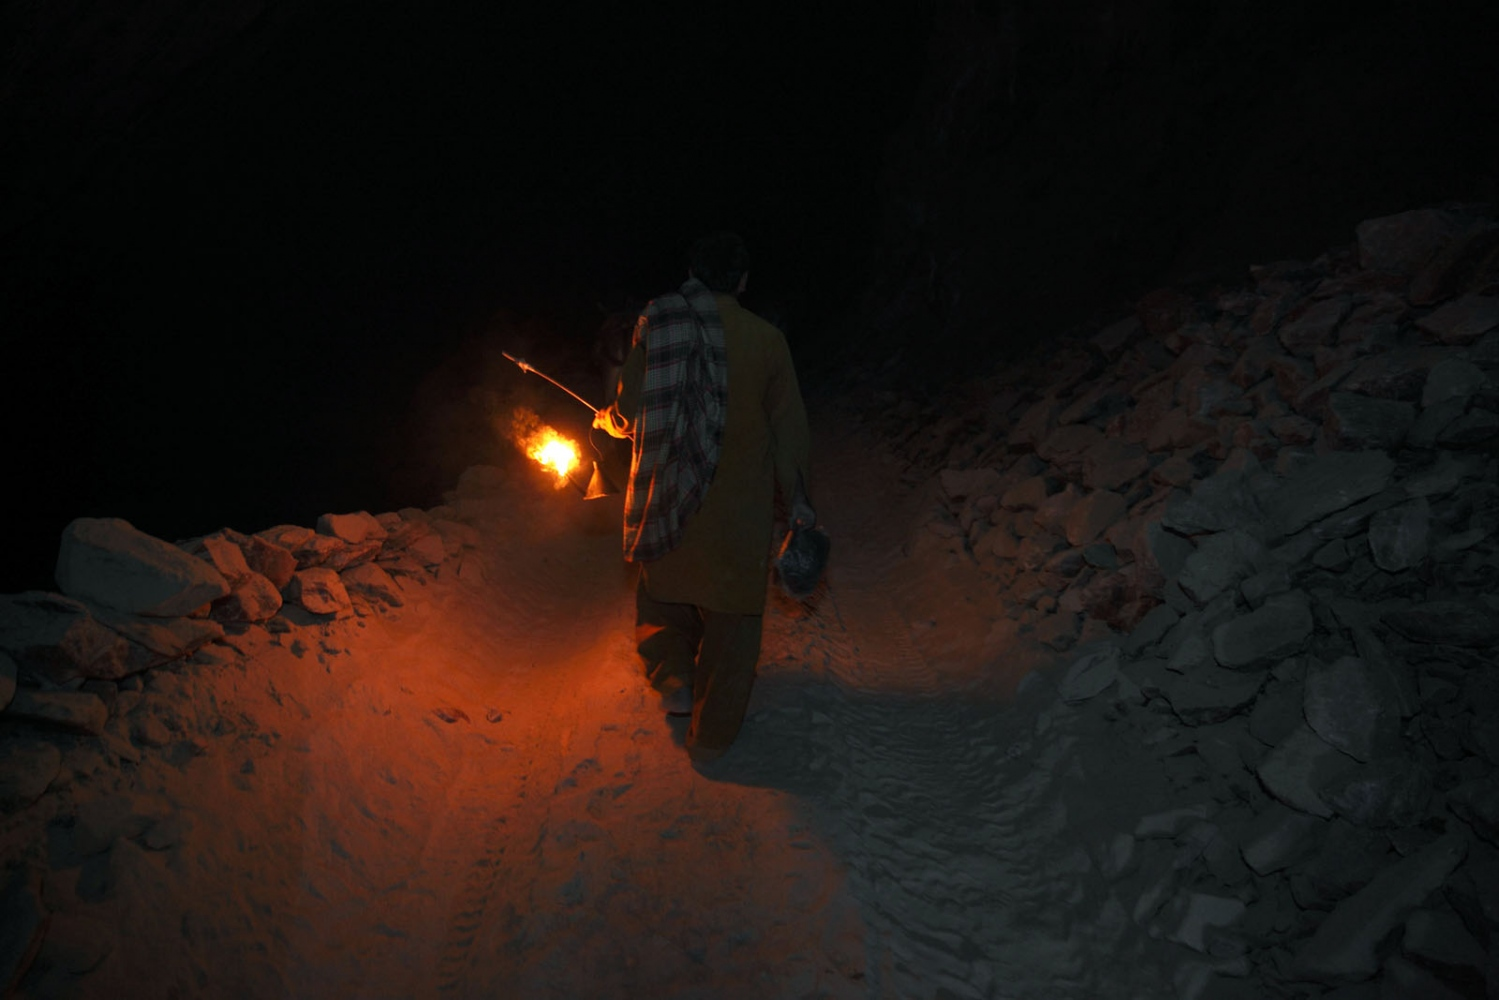 A salt miner walks through the mine after his shift has finished at the Kalabagh salt mine. Light from his small oil-burning lantern is all he has to find his way out. Punjab, Pakistan.